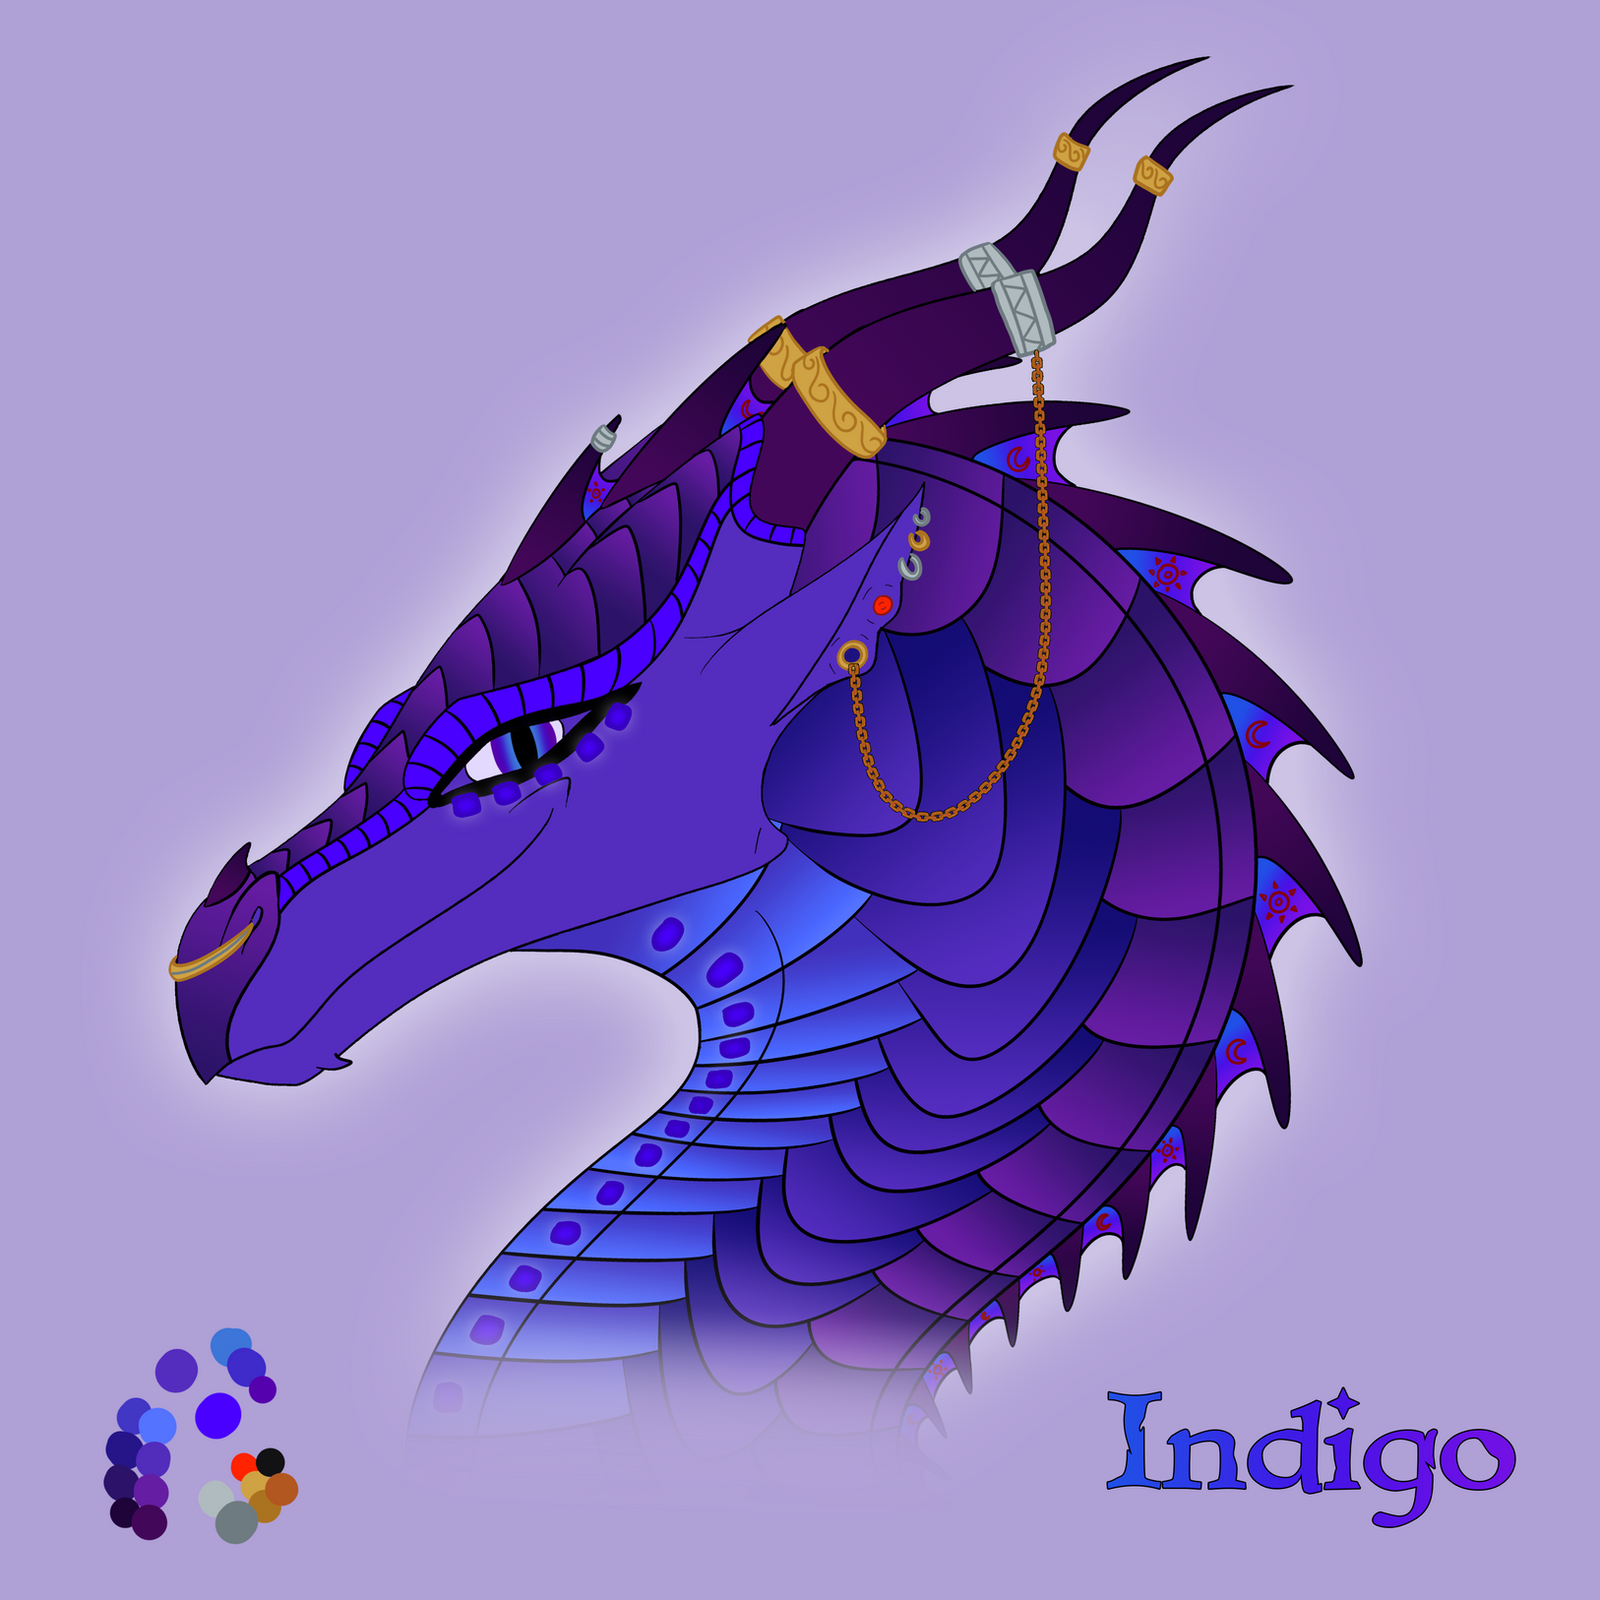 Indigo By Xthedragonrebornx On Deviantart